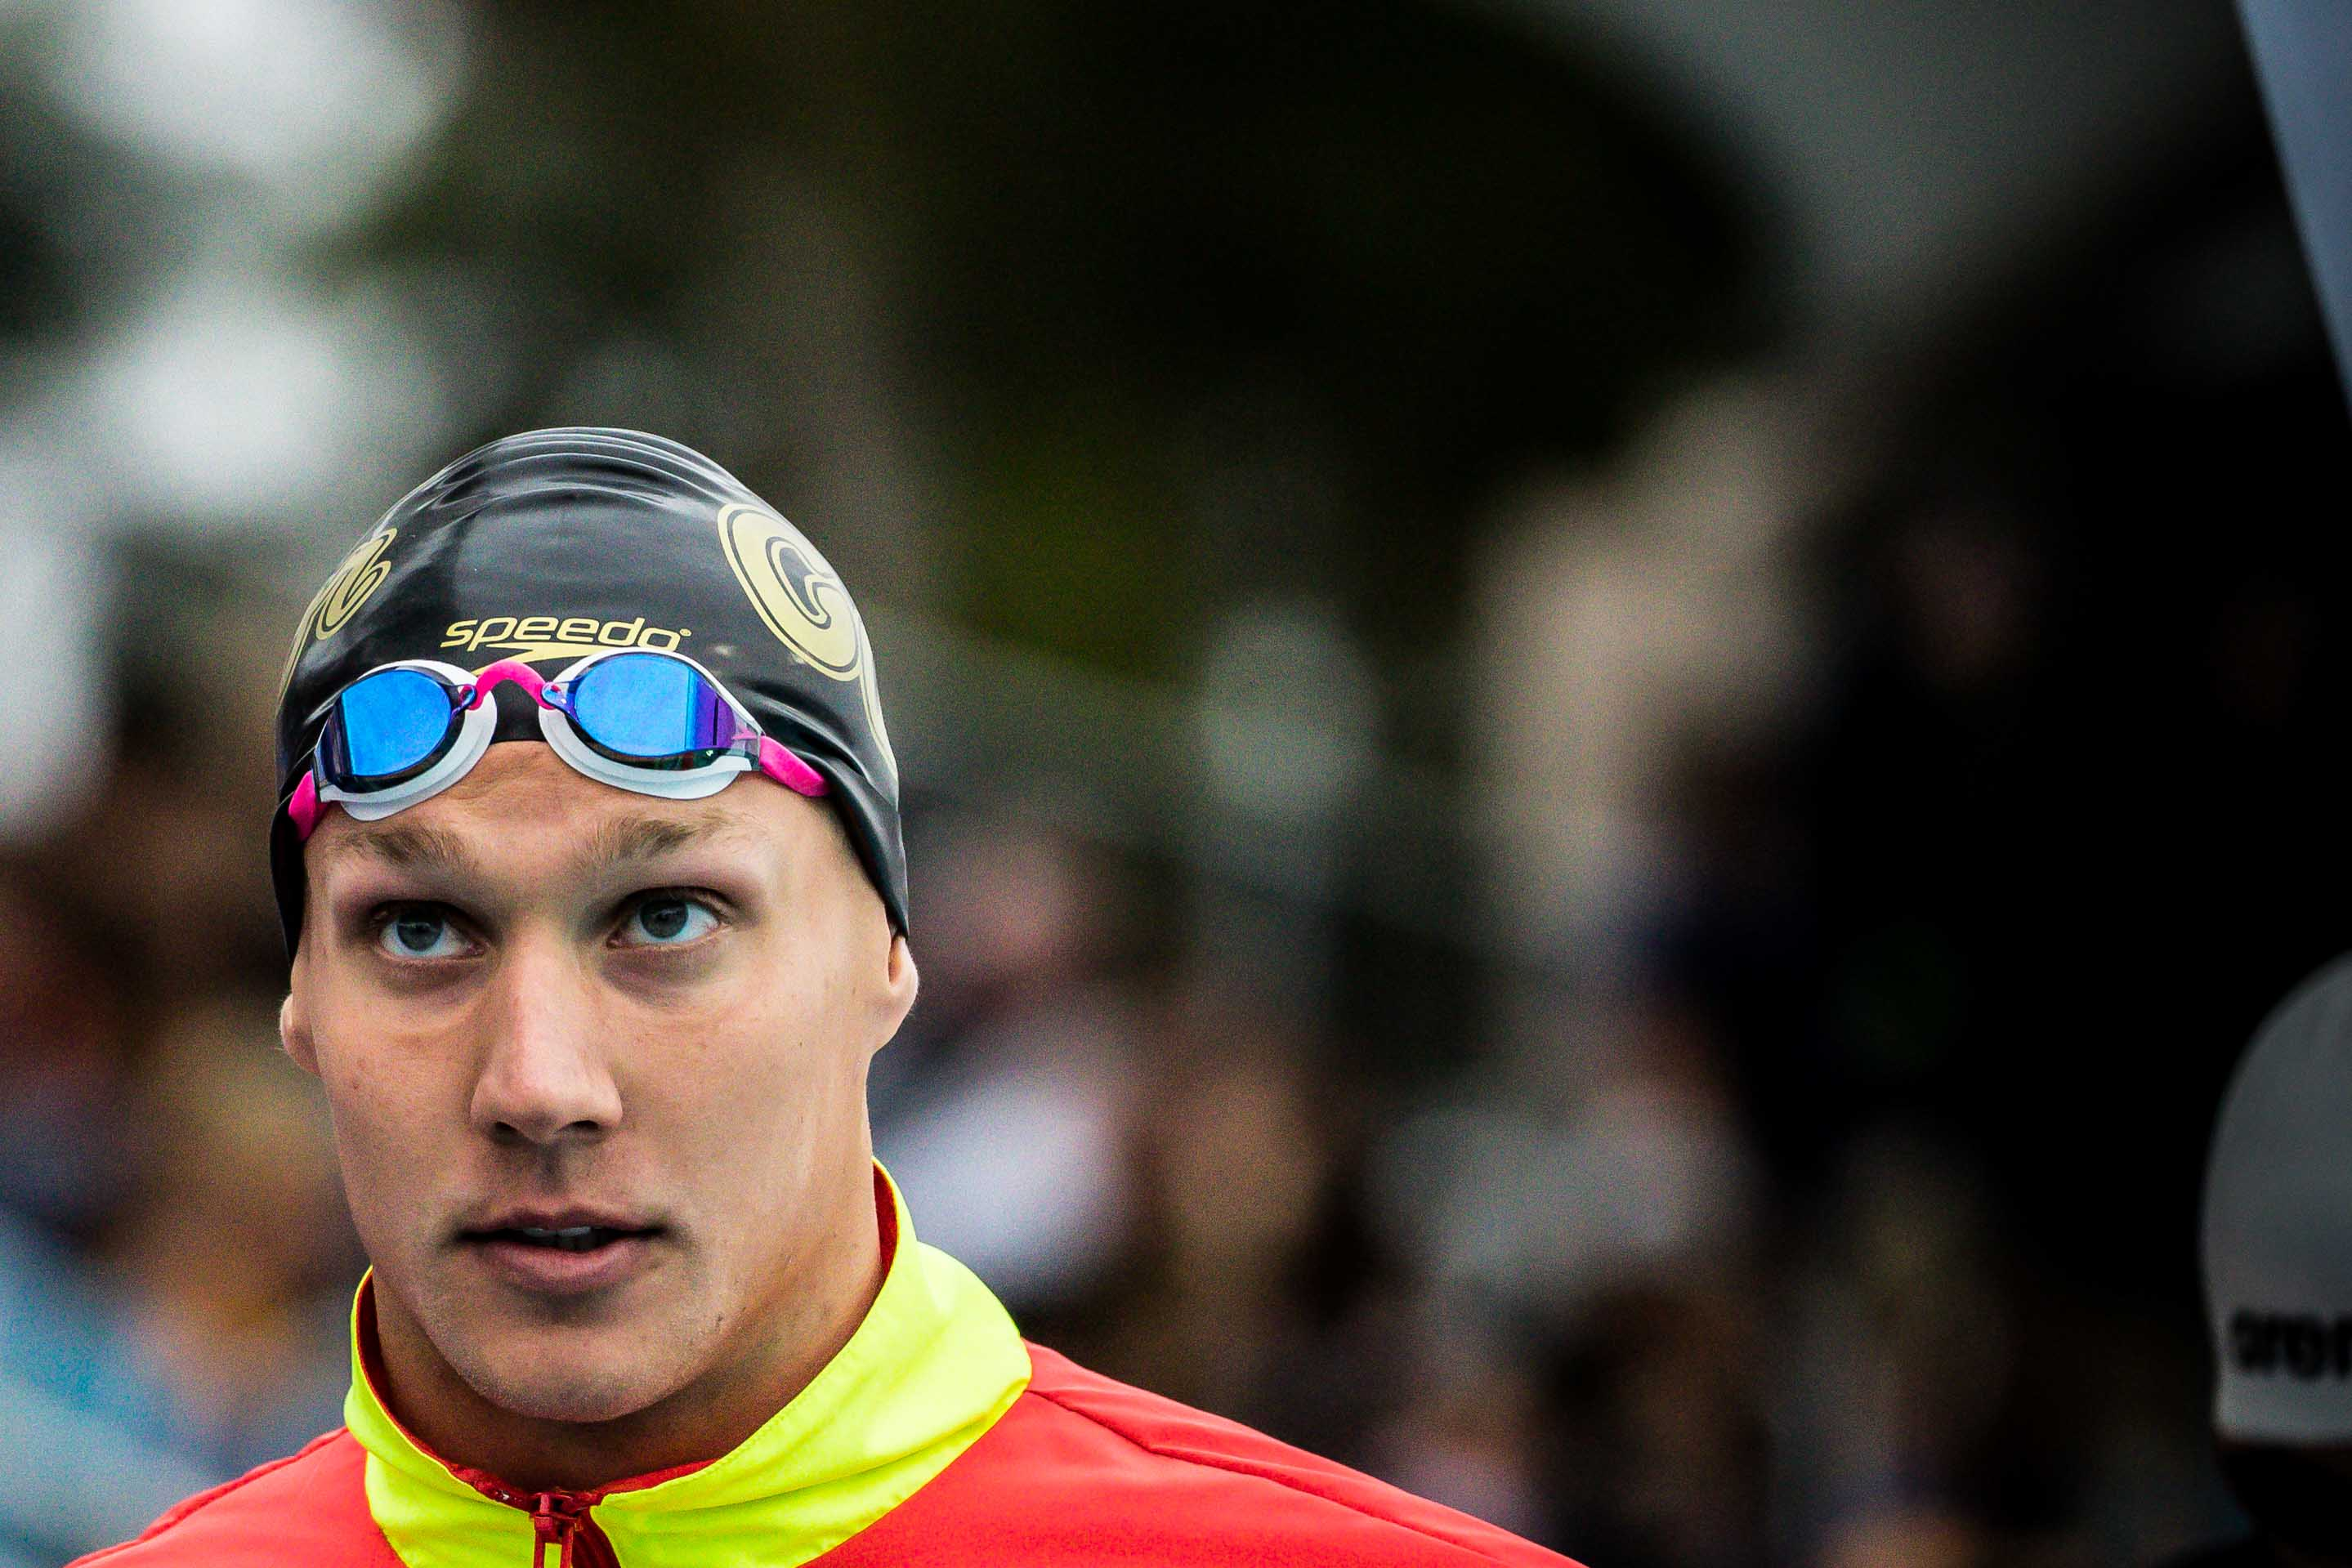 List of World Championships records in swimming